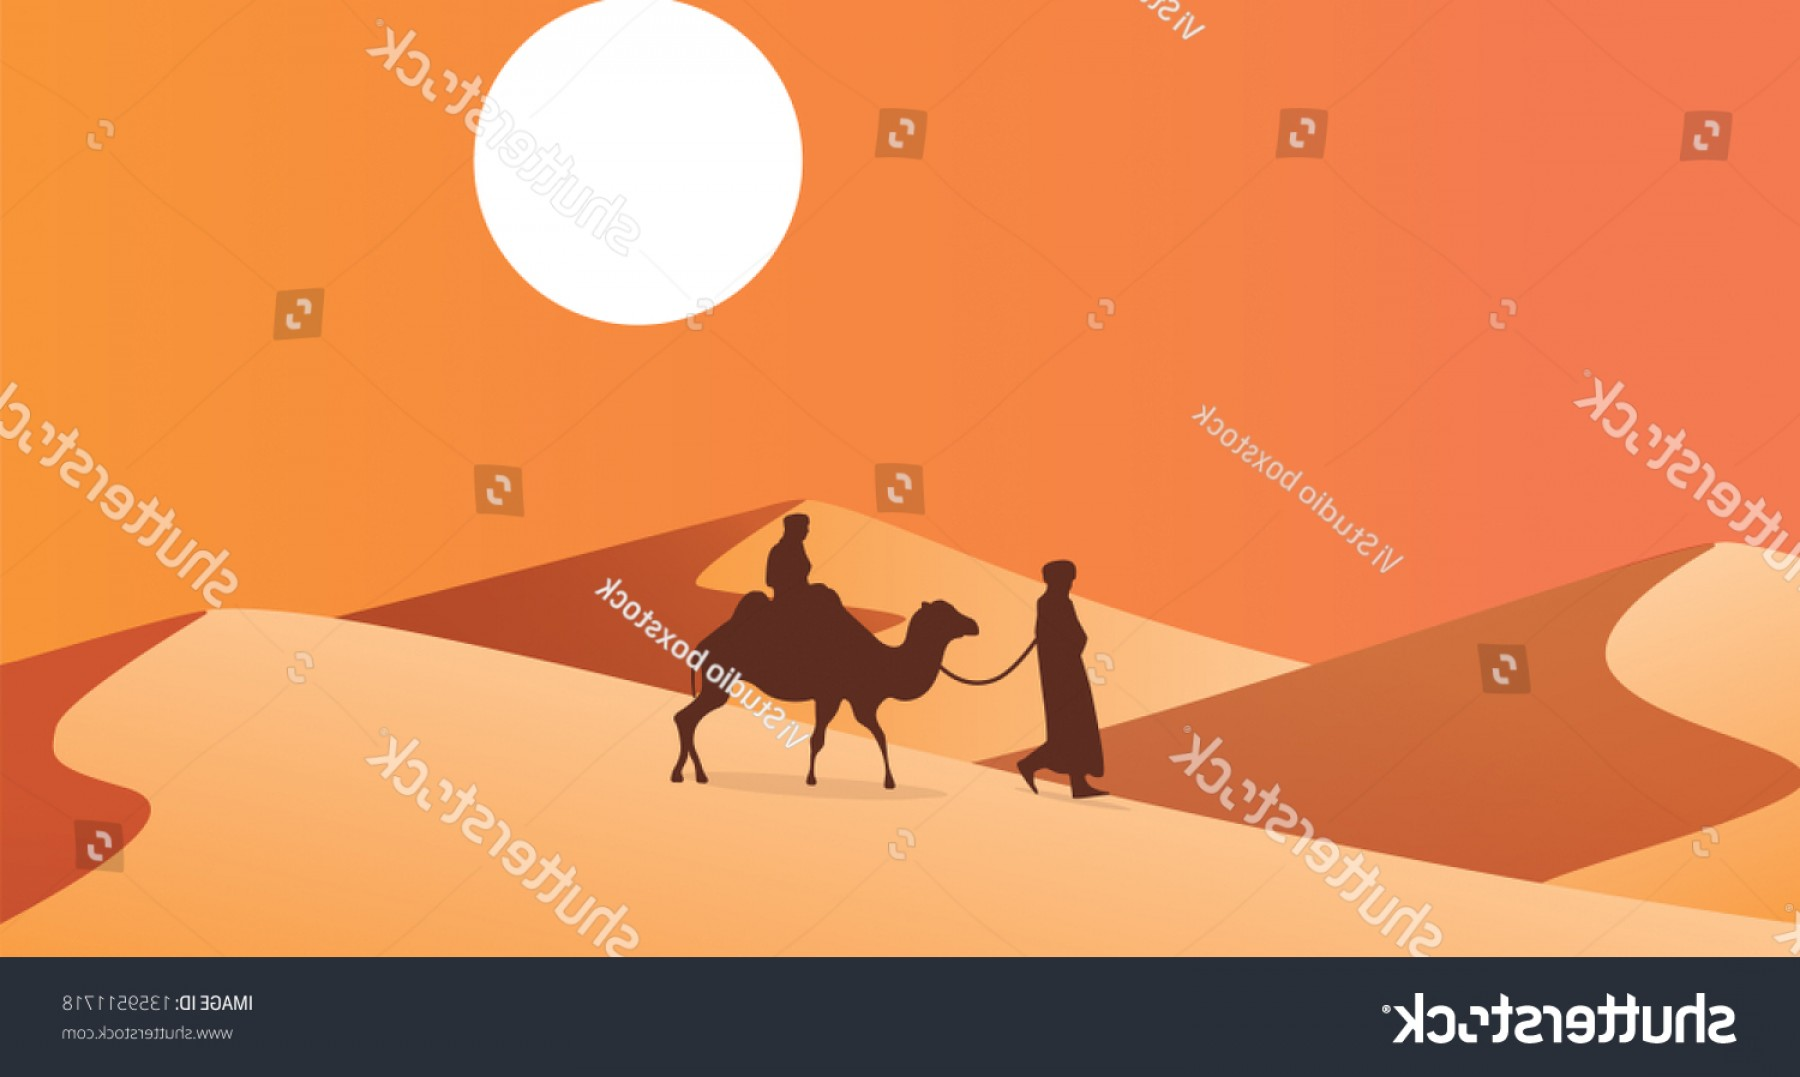 Sand Dune Silhouettes Vectors: Silhouette Camel Trader Crossing Sand Dune